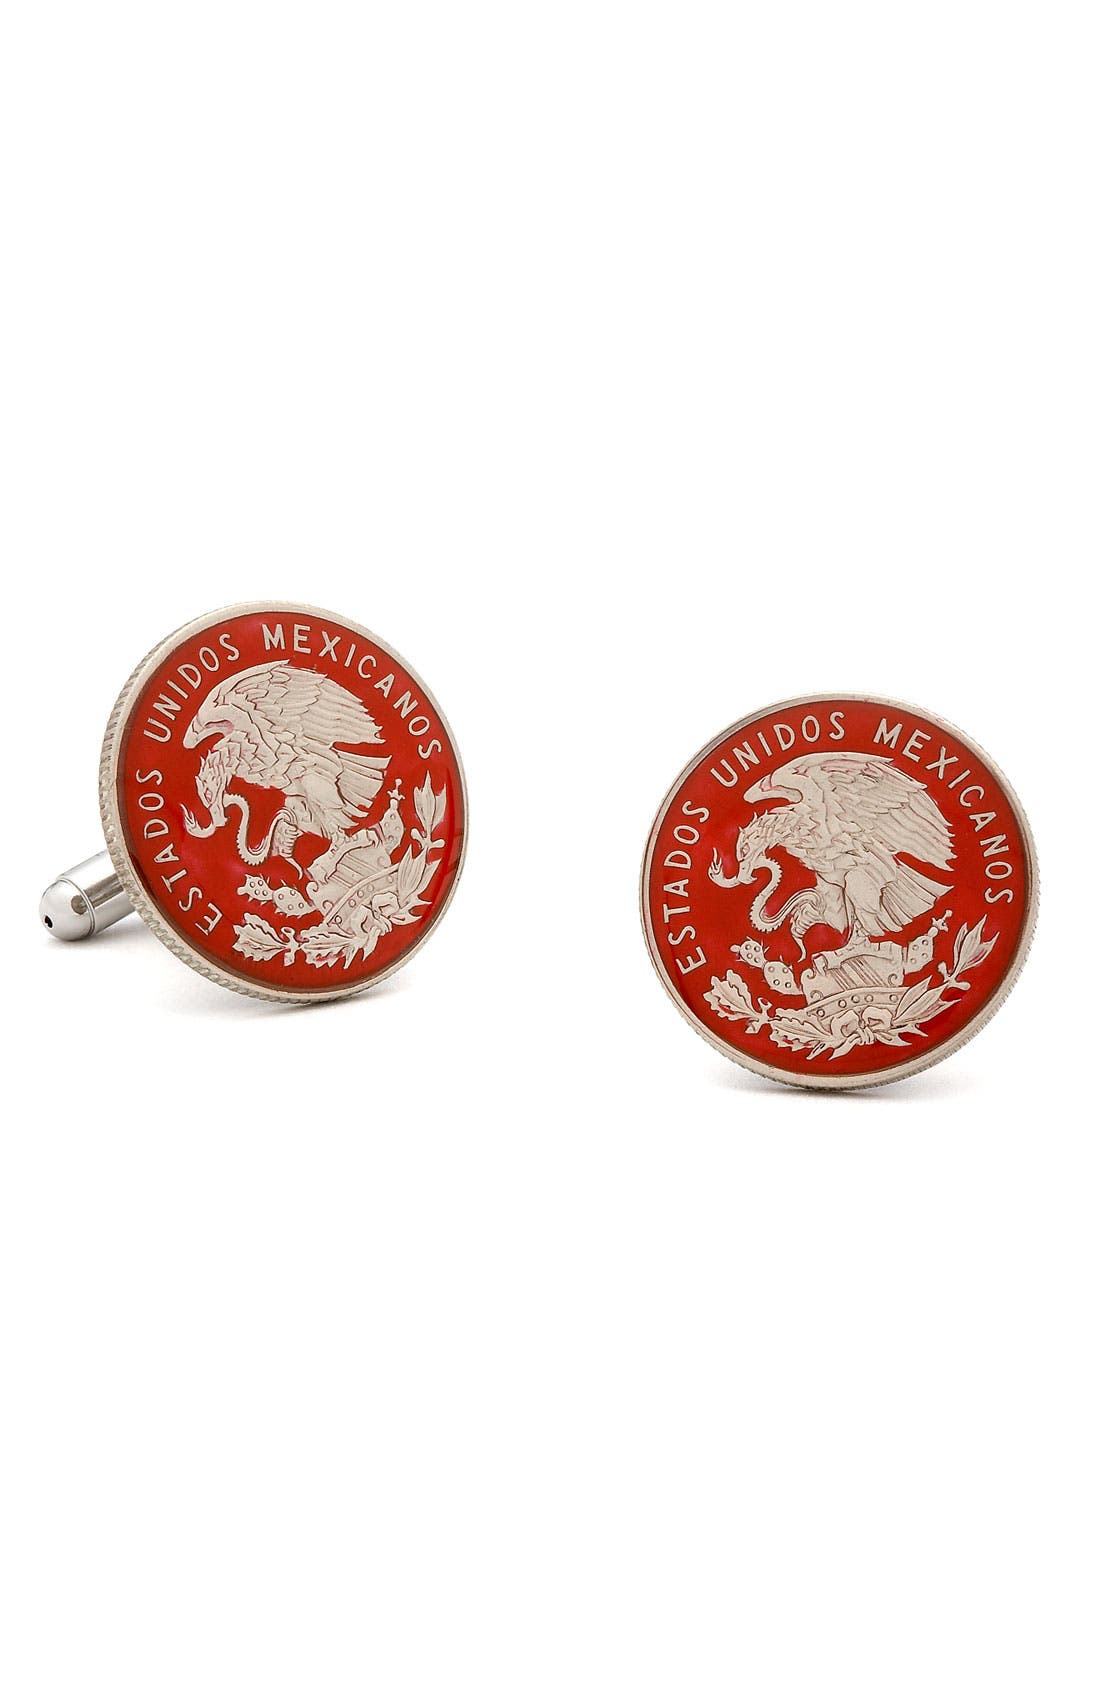 Alternate Image 1 Selected - Penny Black 40 Mexican Peso Cuff Links